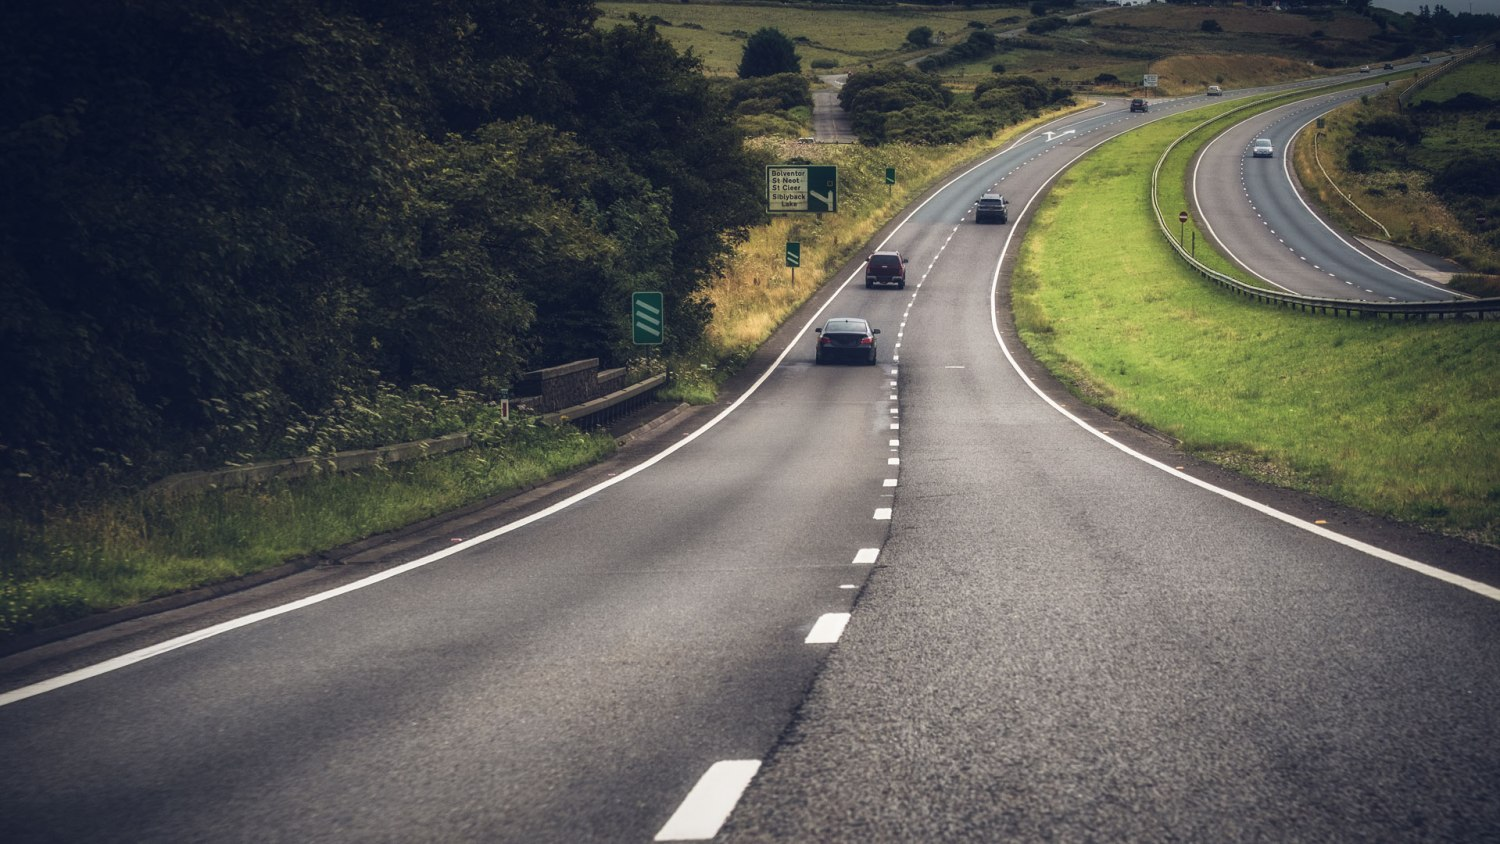 The A30 in Cornwall